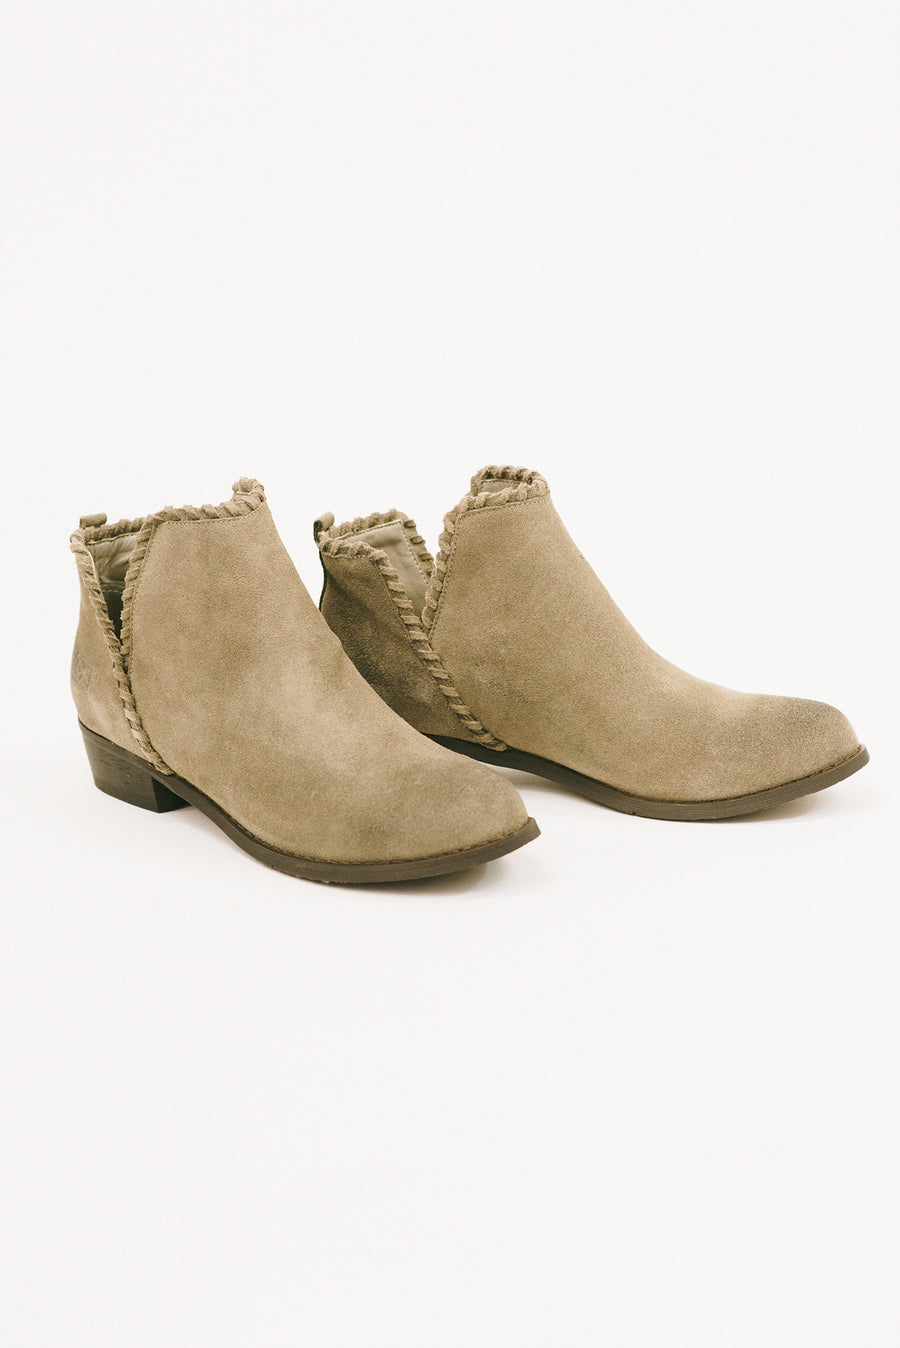 CHINESE LAUNDRY: CROSSROADS ANKLE BOOTIE